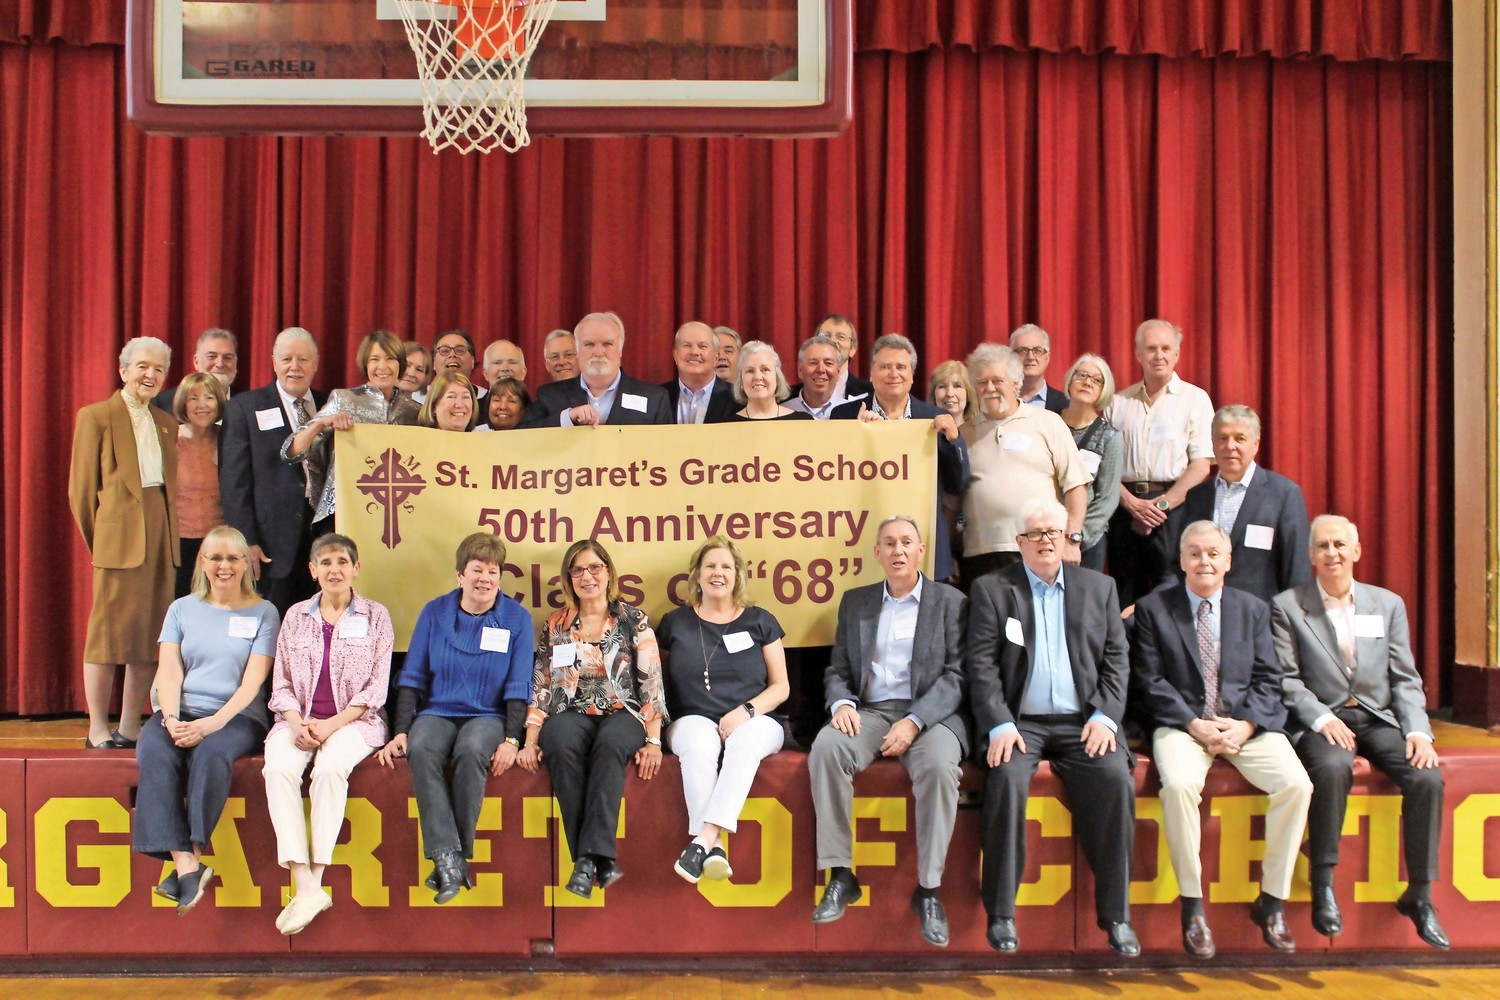 Members of the Class of 1968 gather onstage at the end of their 50th anniversary reunion at St. Margaret of Cortona School.